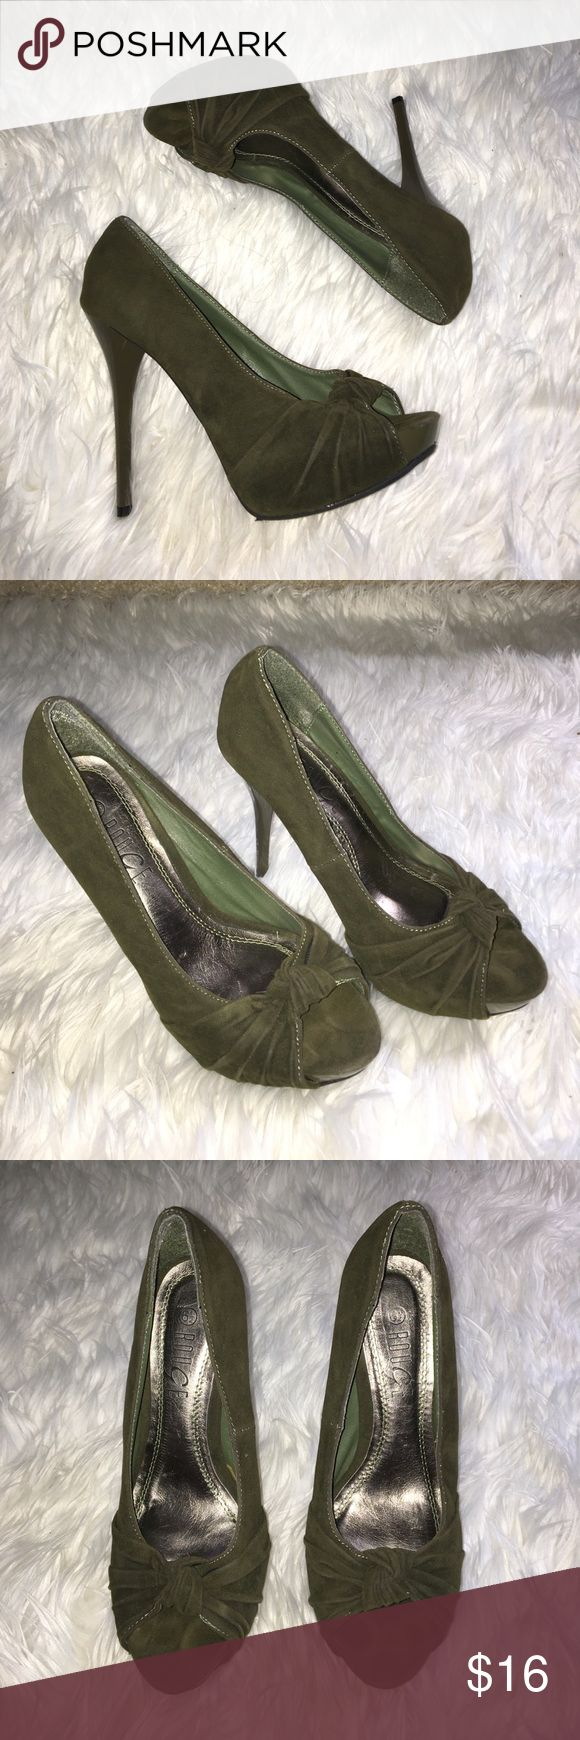 Army green pumps Simple and elegant army green stilettos. 6in heel with platform. Very comfortable and easy to walk in. Worn once, no wear or damage marks. rouge Shoes Platforms